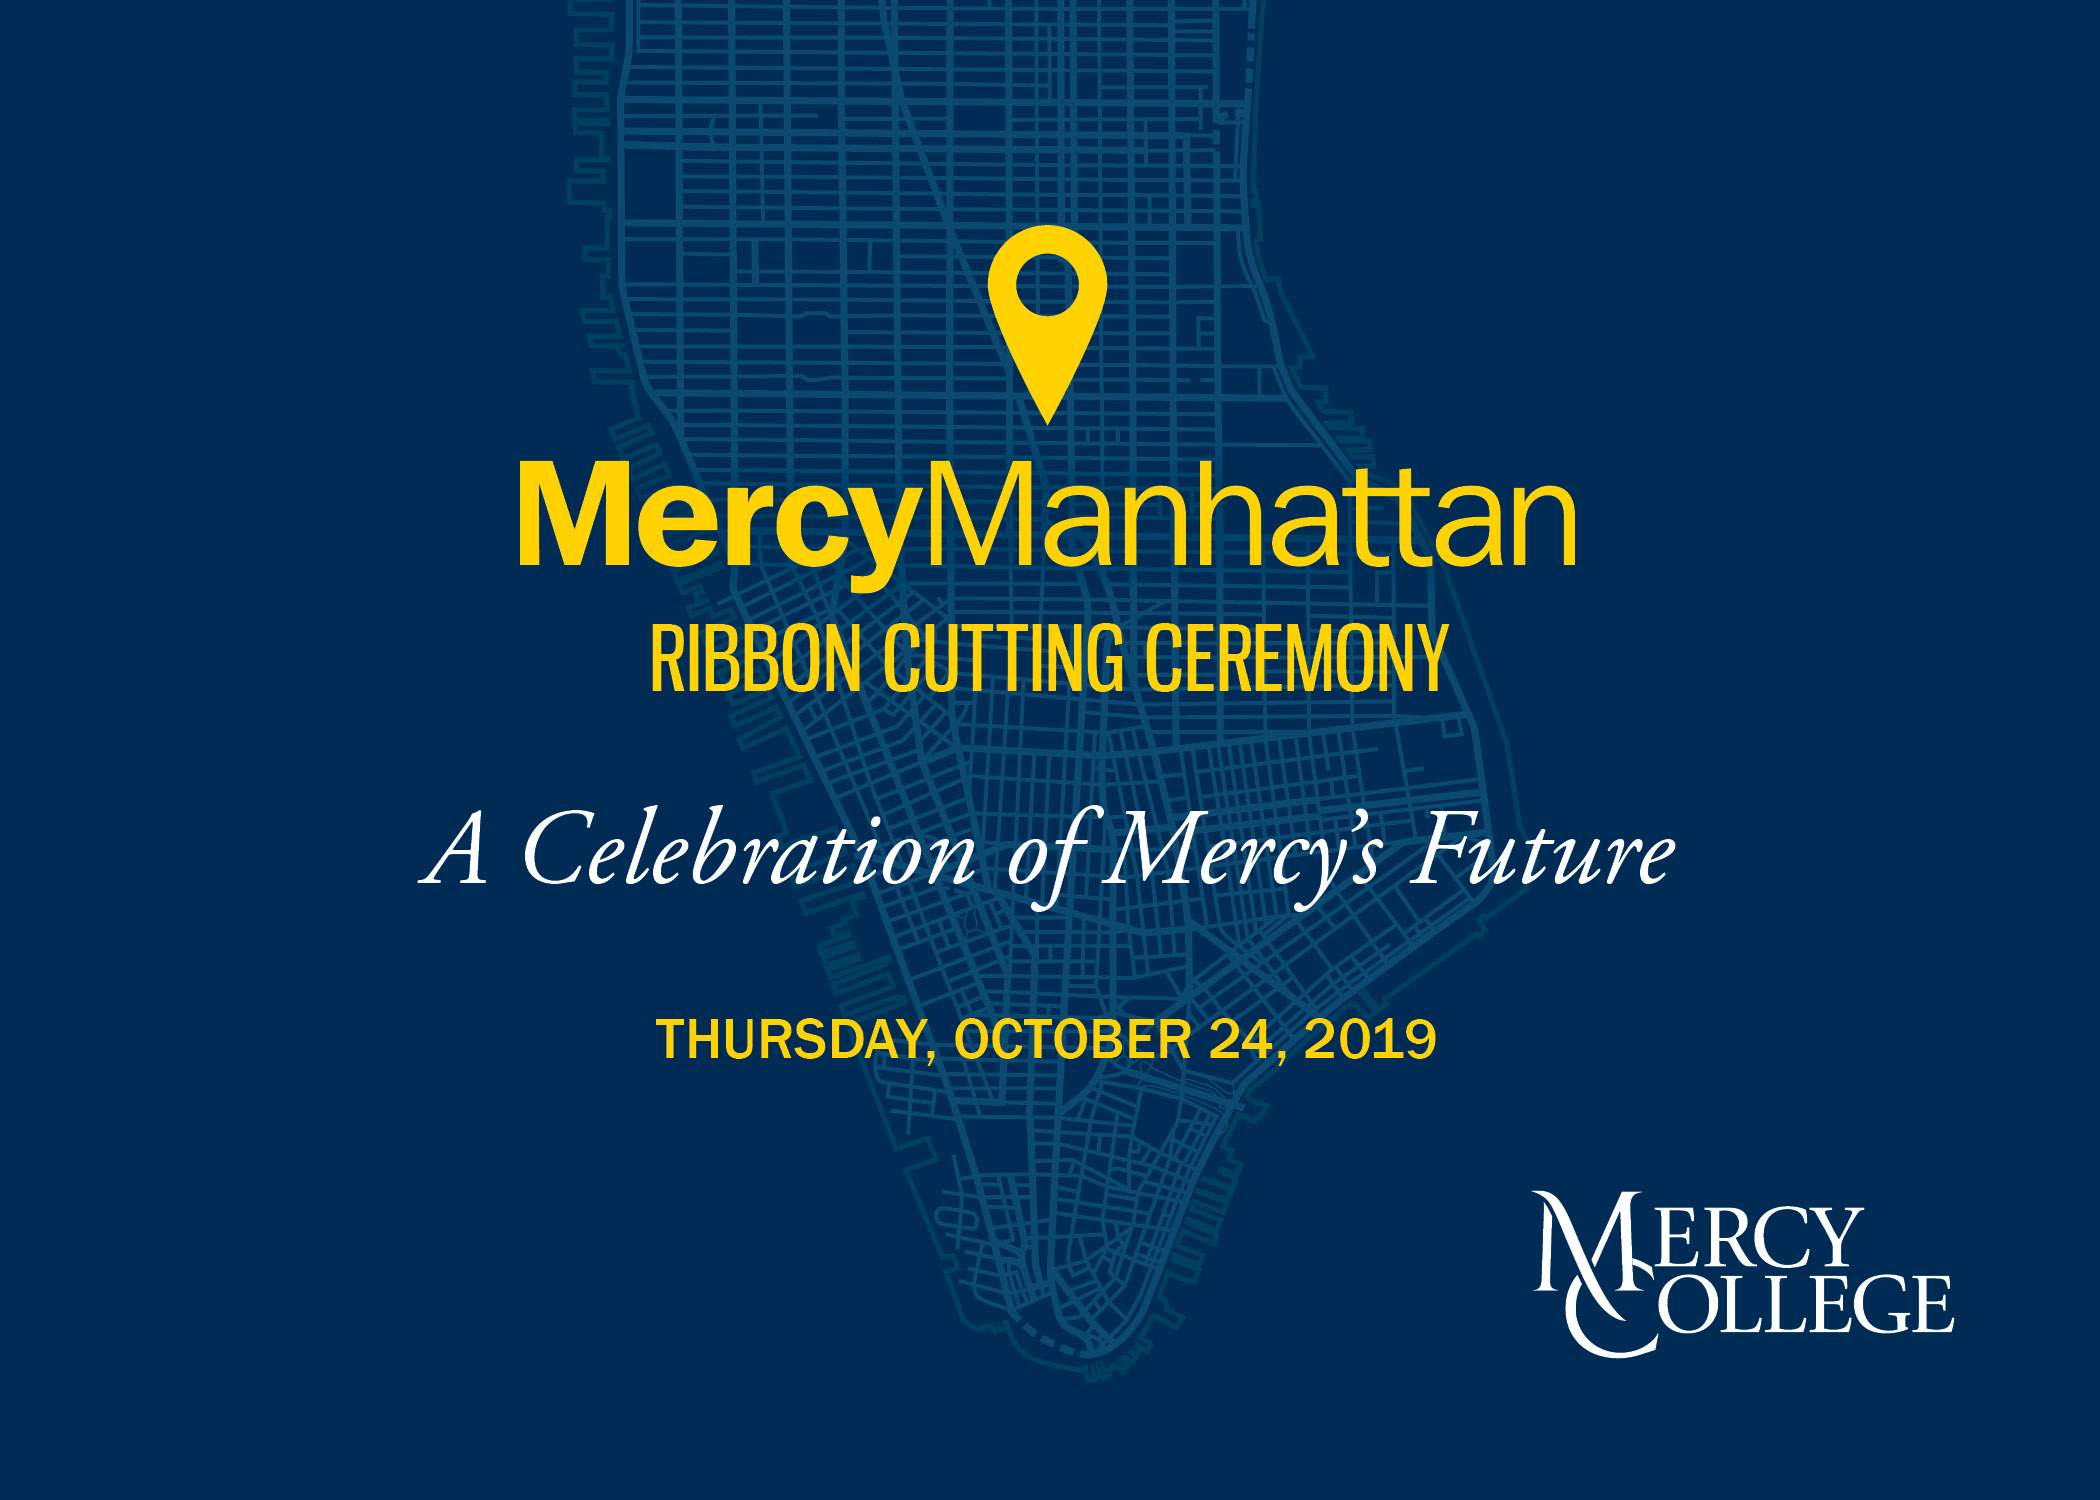 MercyManhattan Ribbon Cutting